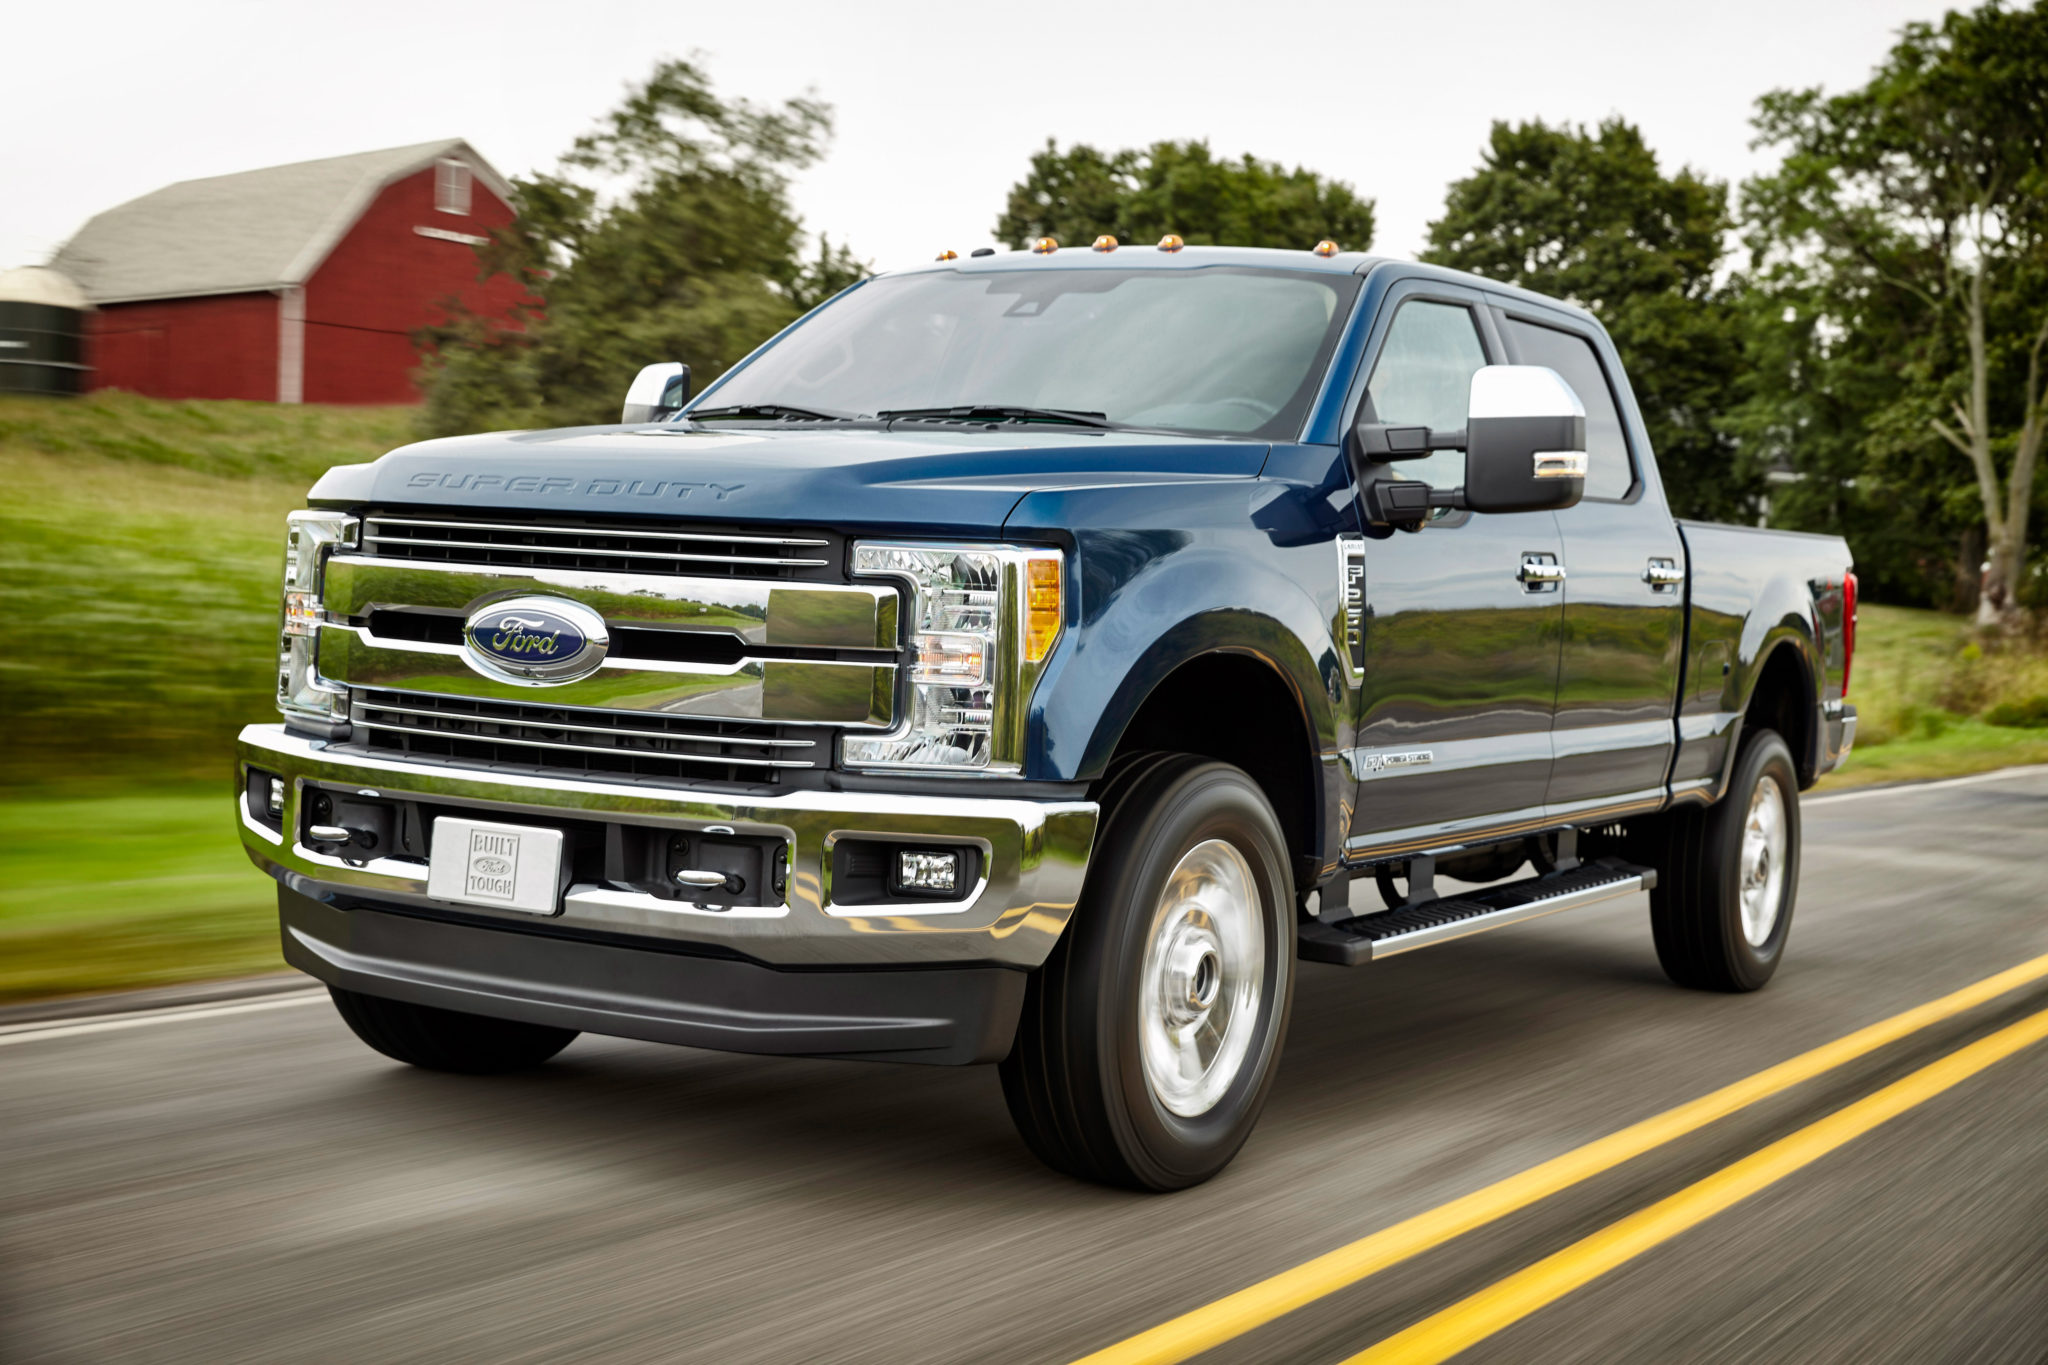 2017 Ford F-250 lands at Performax